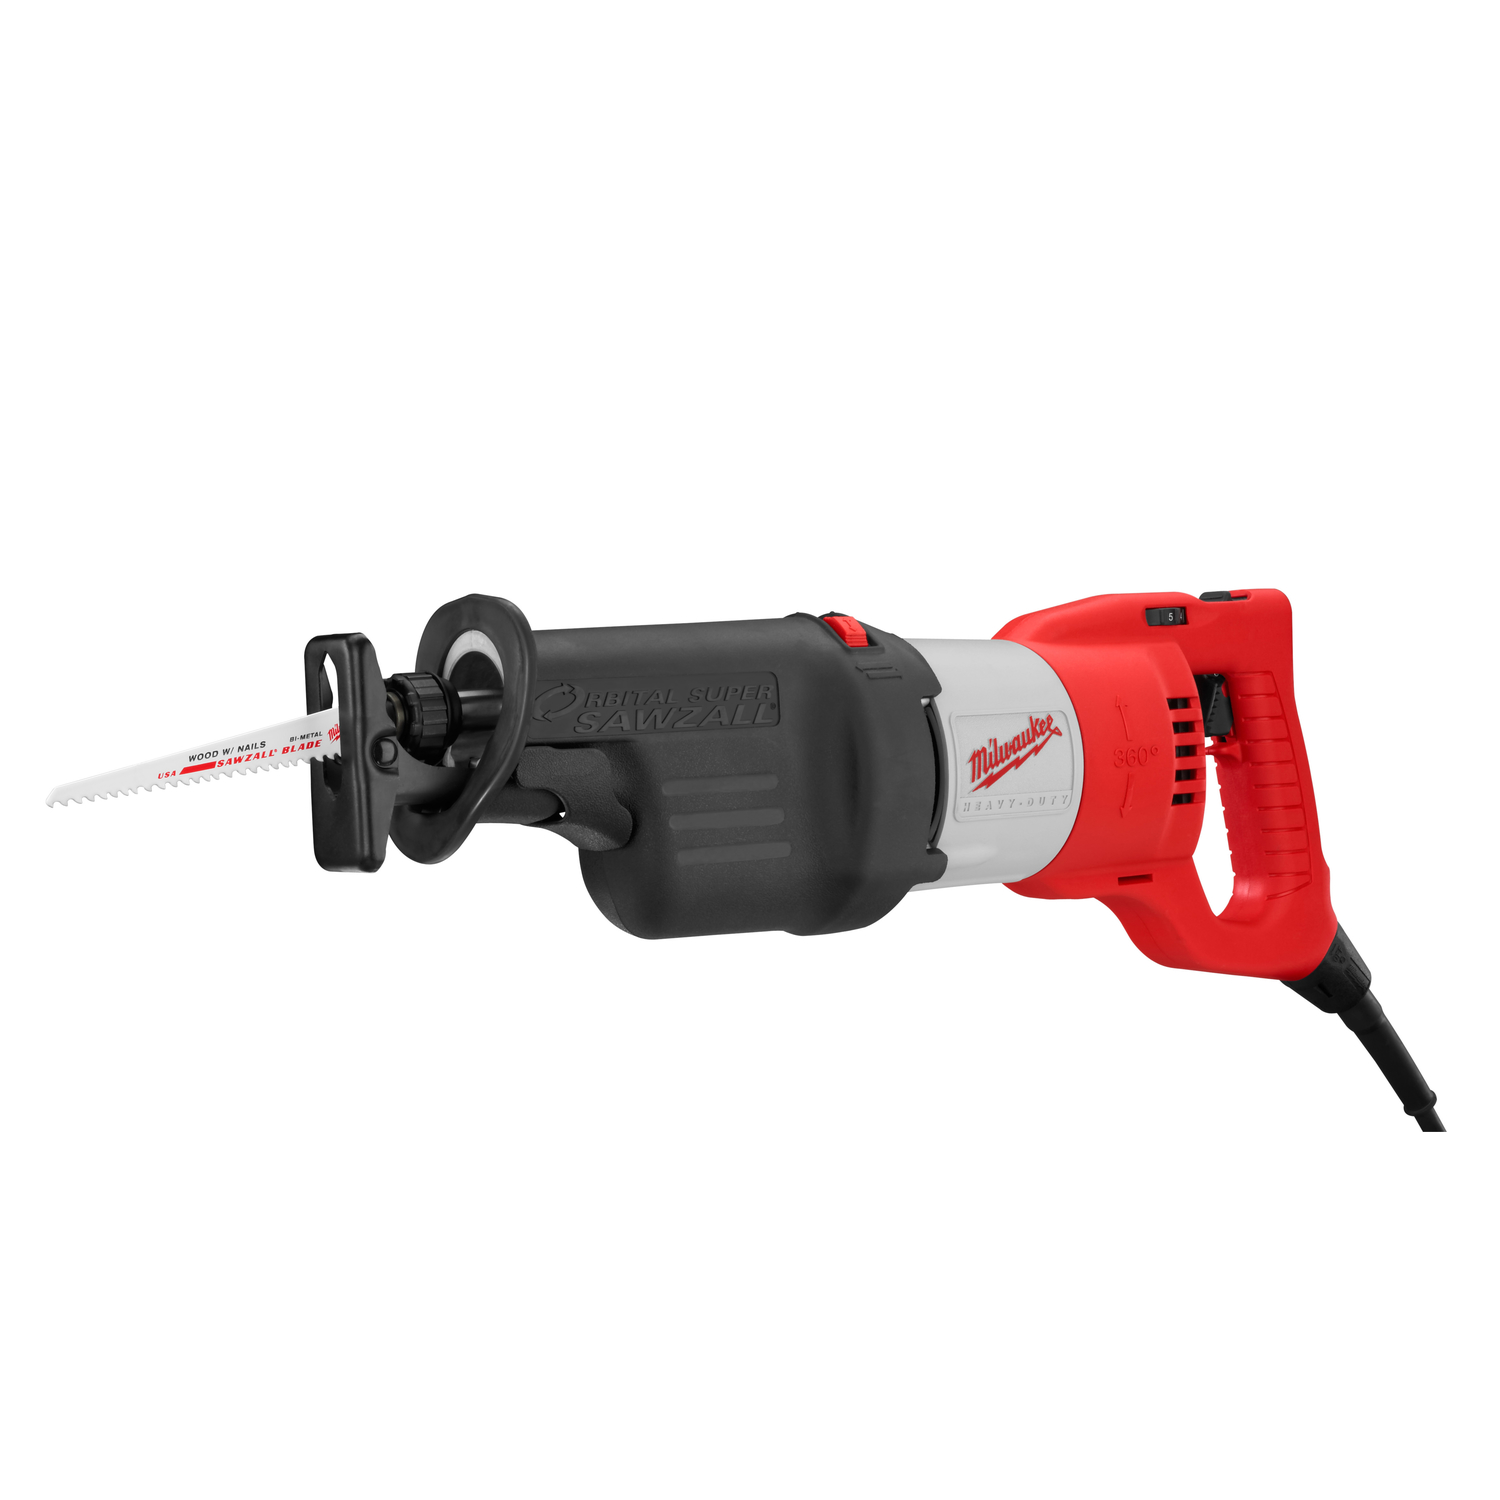 medium resolution of milwaukee super sawzall 1 1 4 in corded orbital reciprocating saw 13 amps